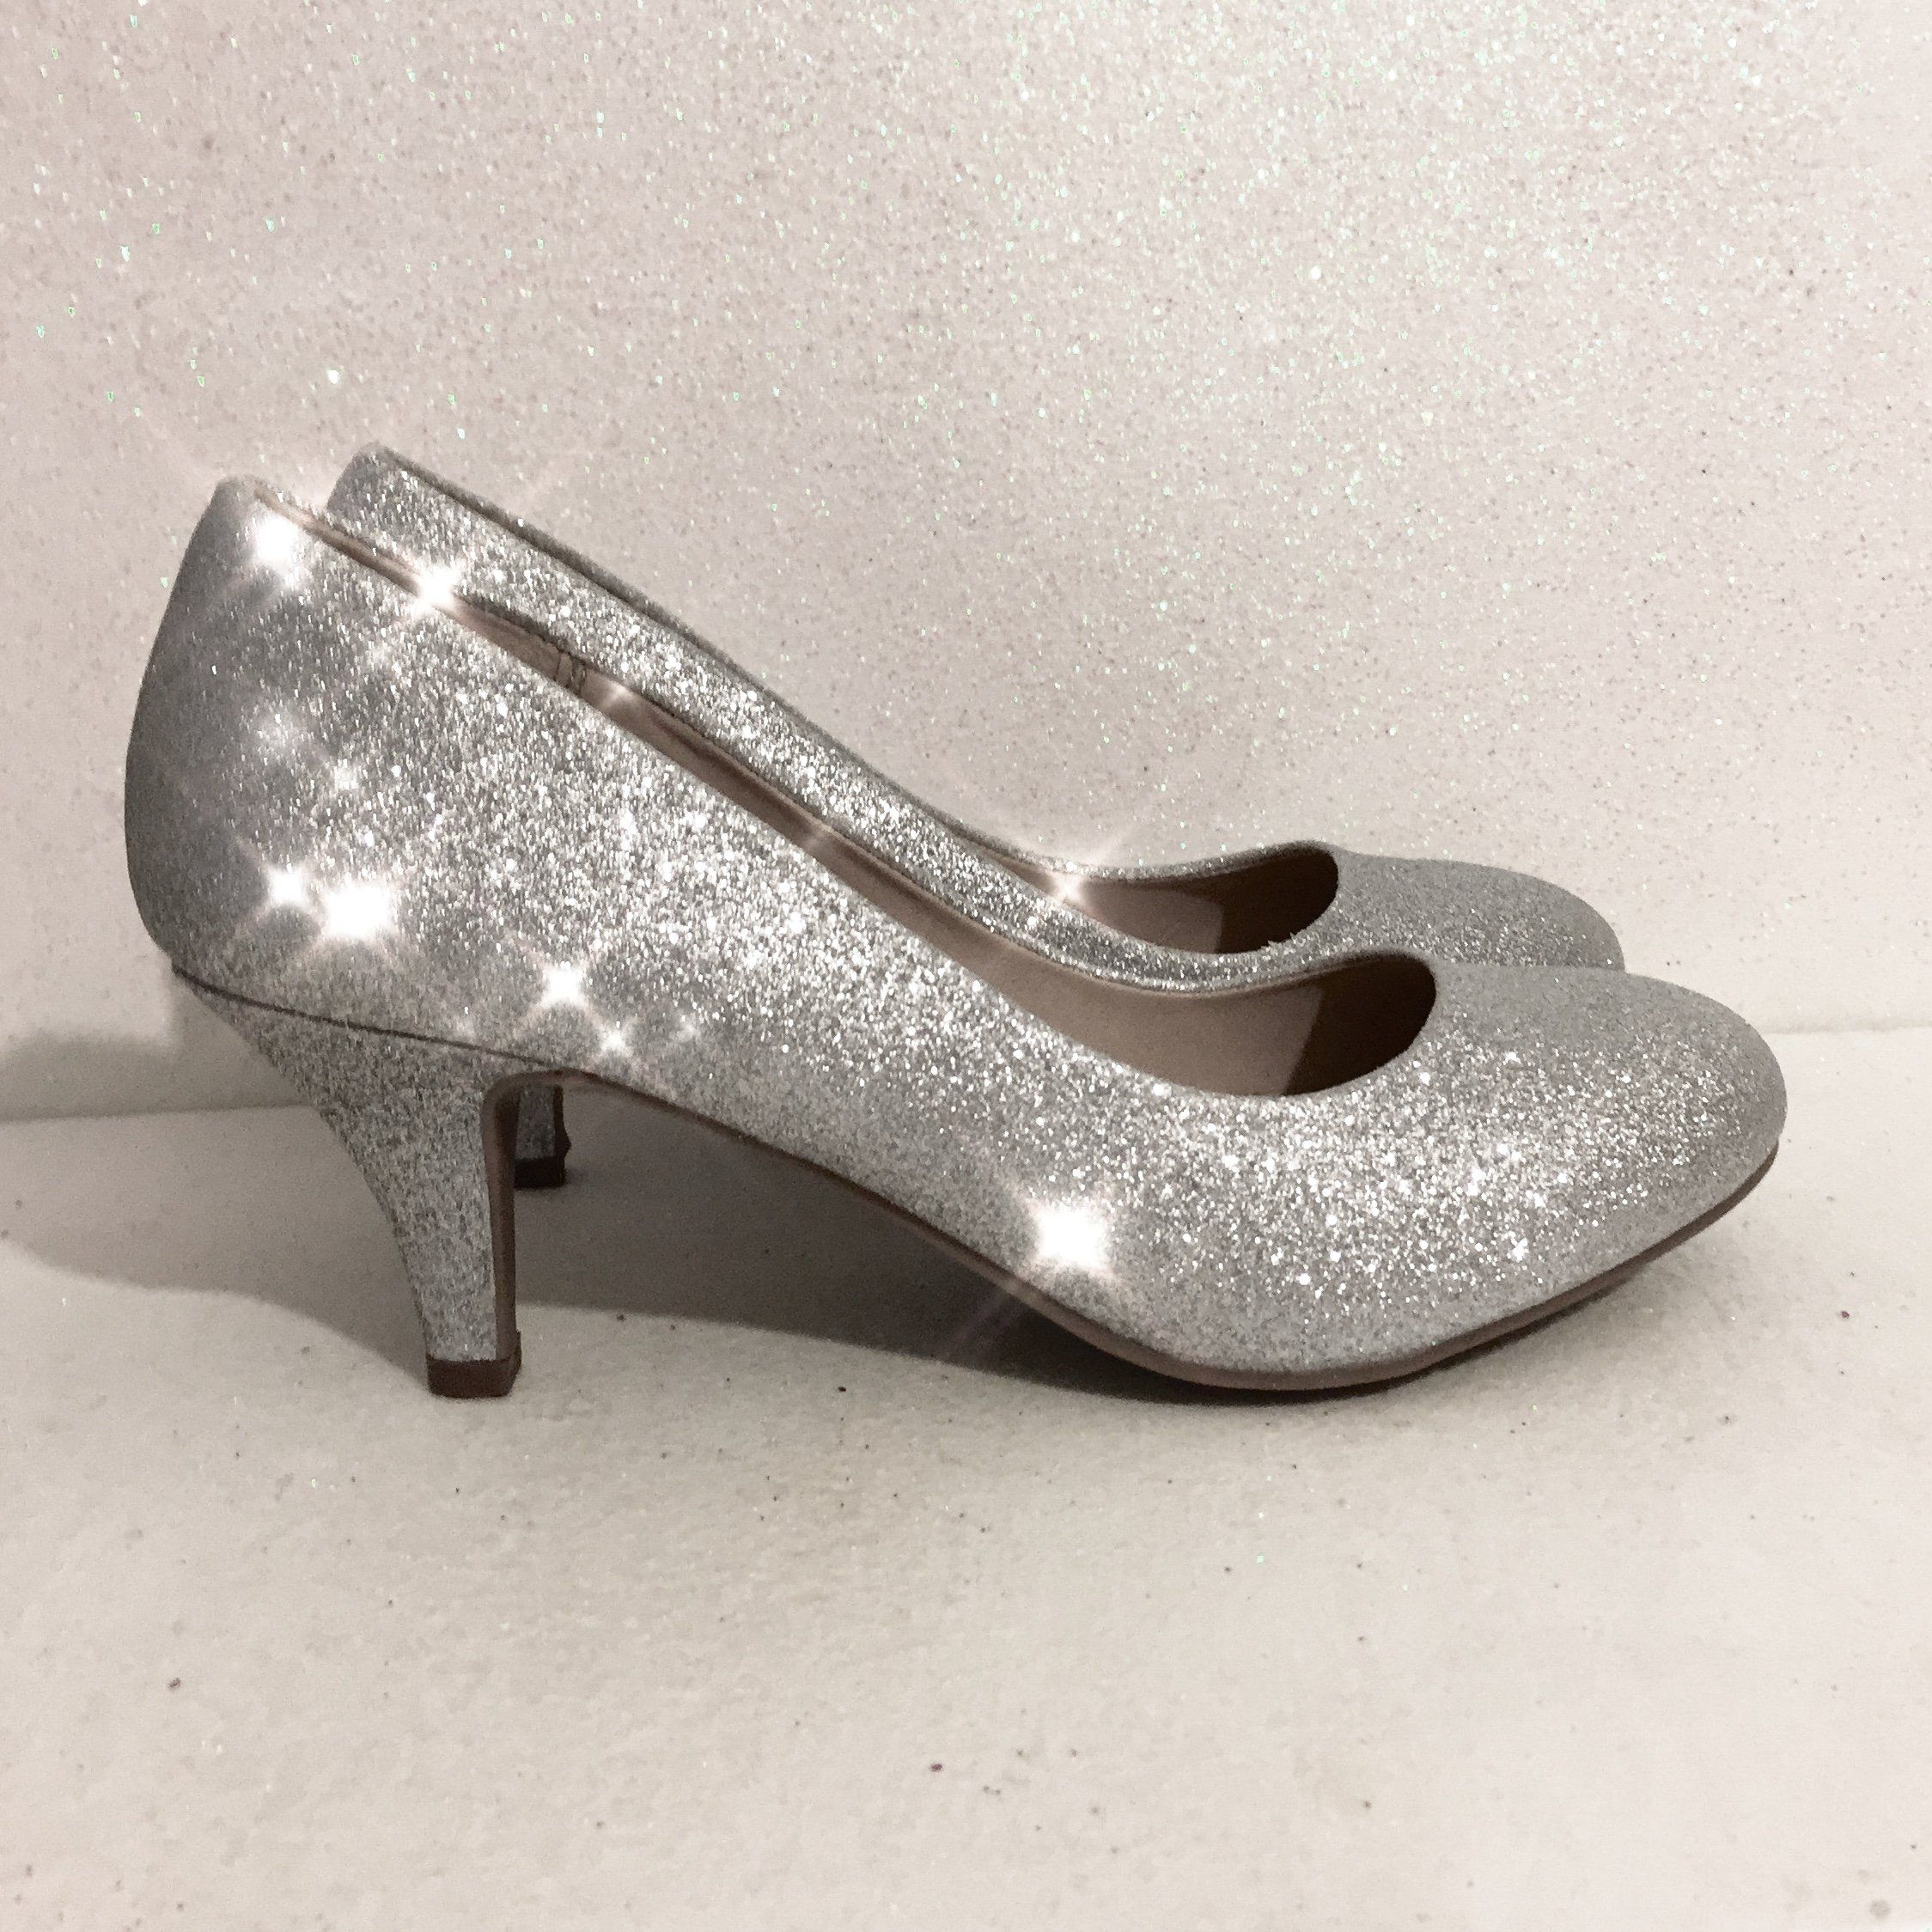 Sparkly Silver Glitter low Heels